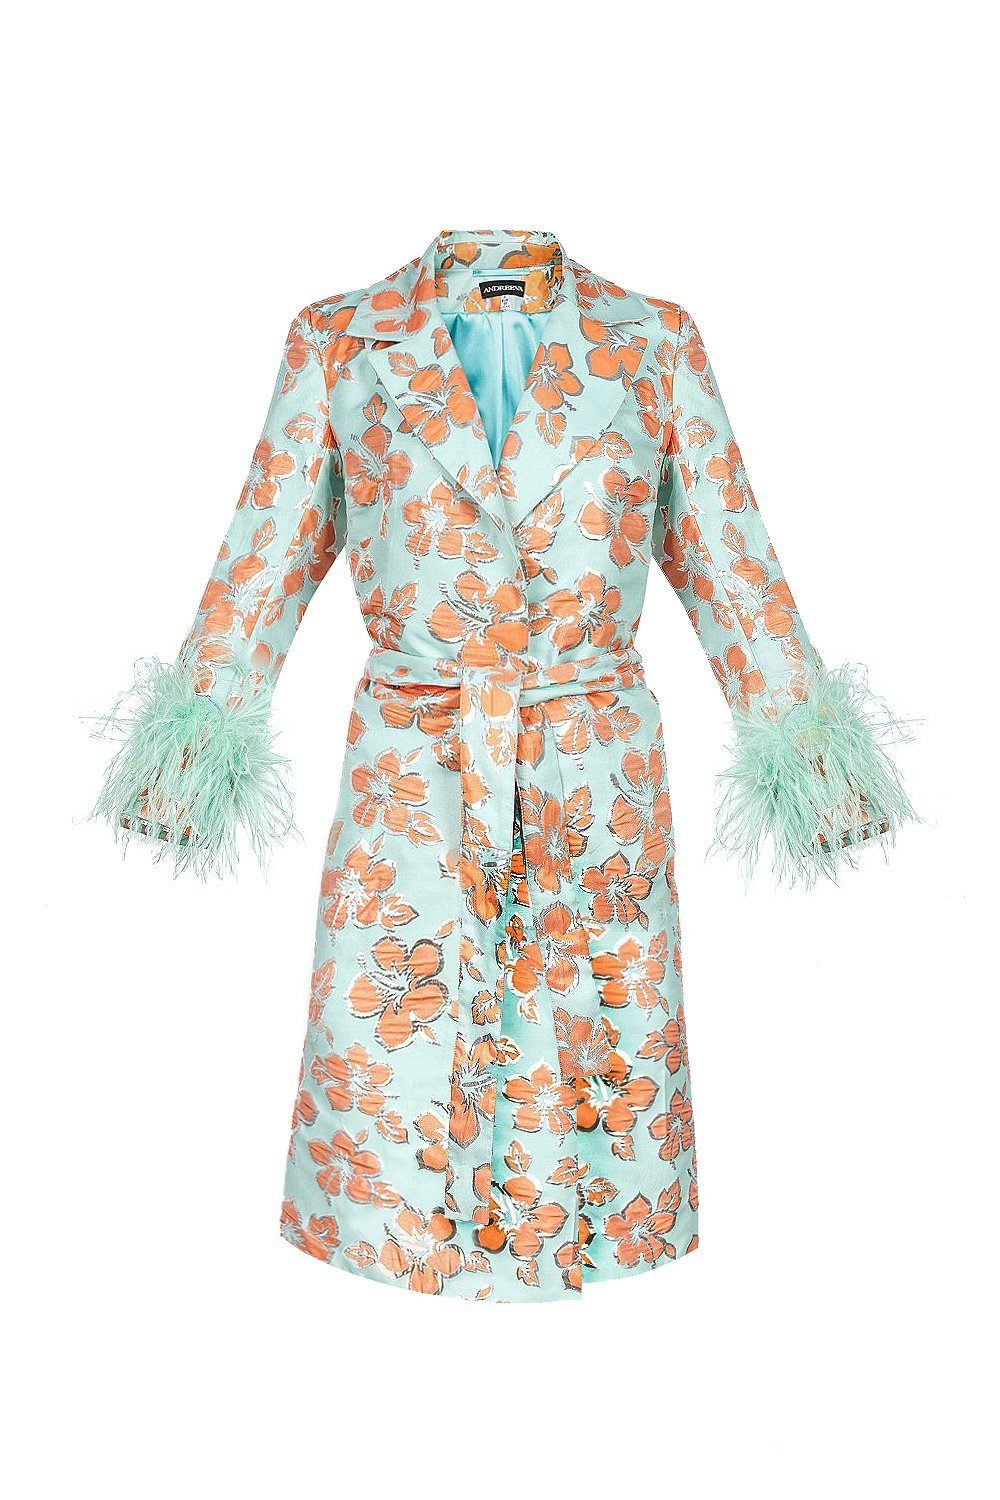 Vanilla jacquard coat with detachable feathers cuffs - coat